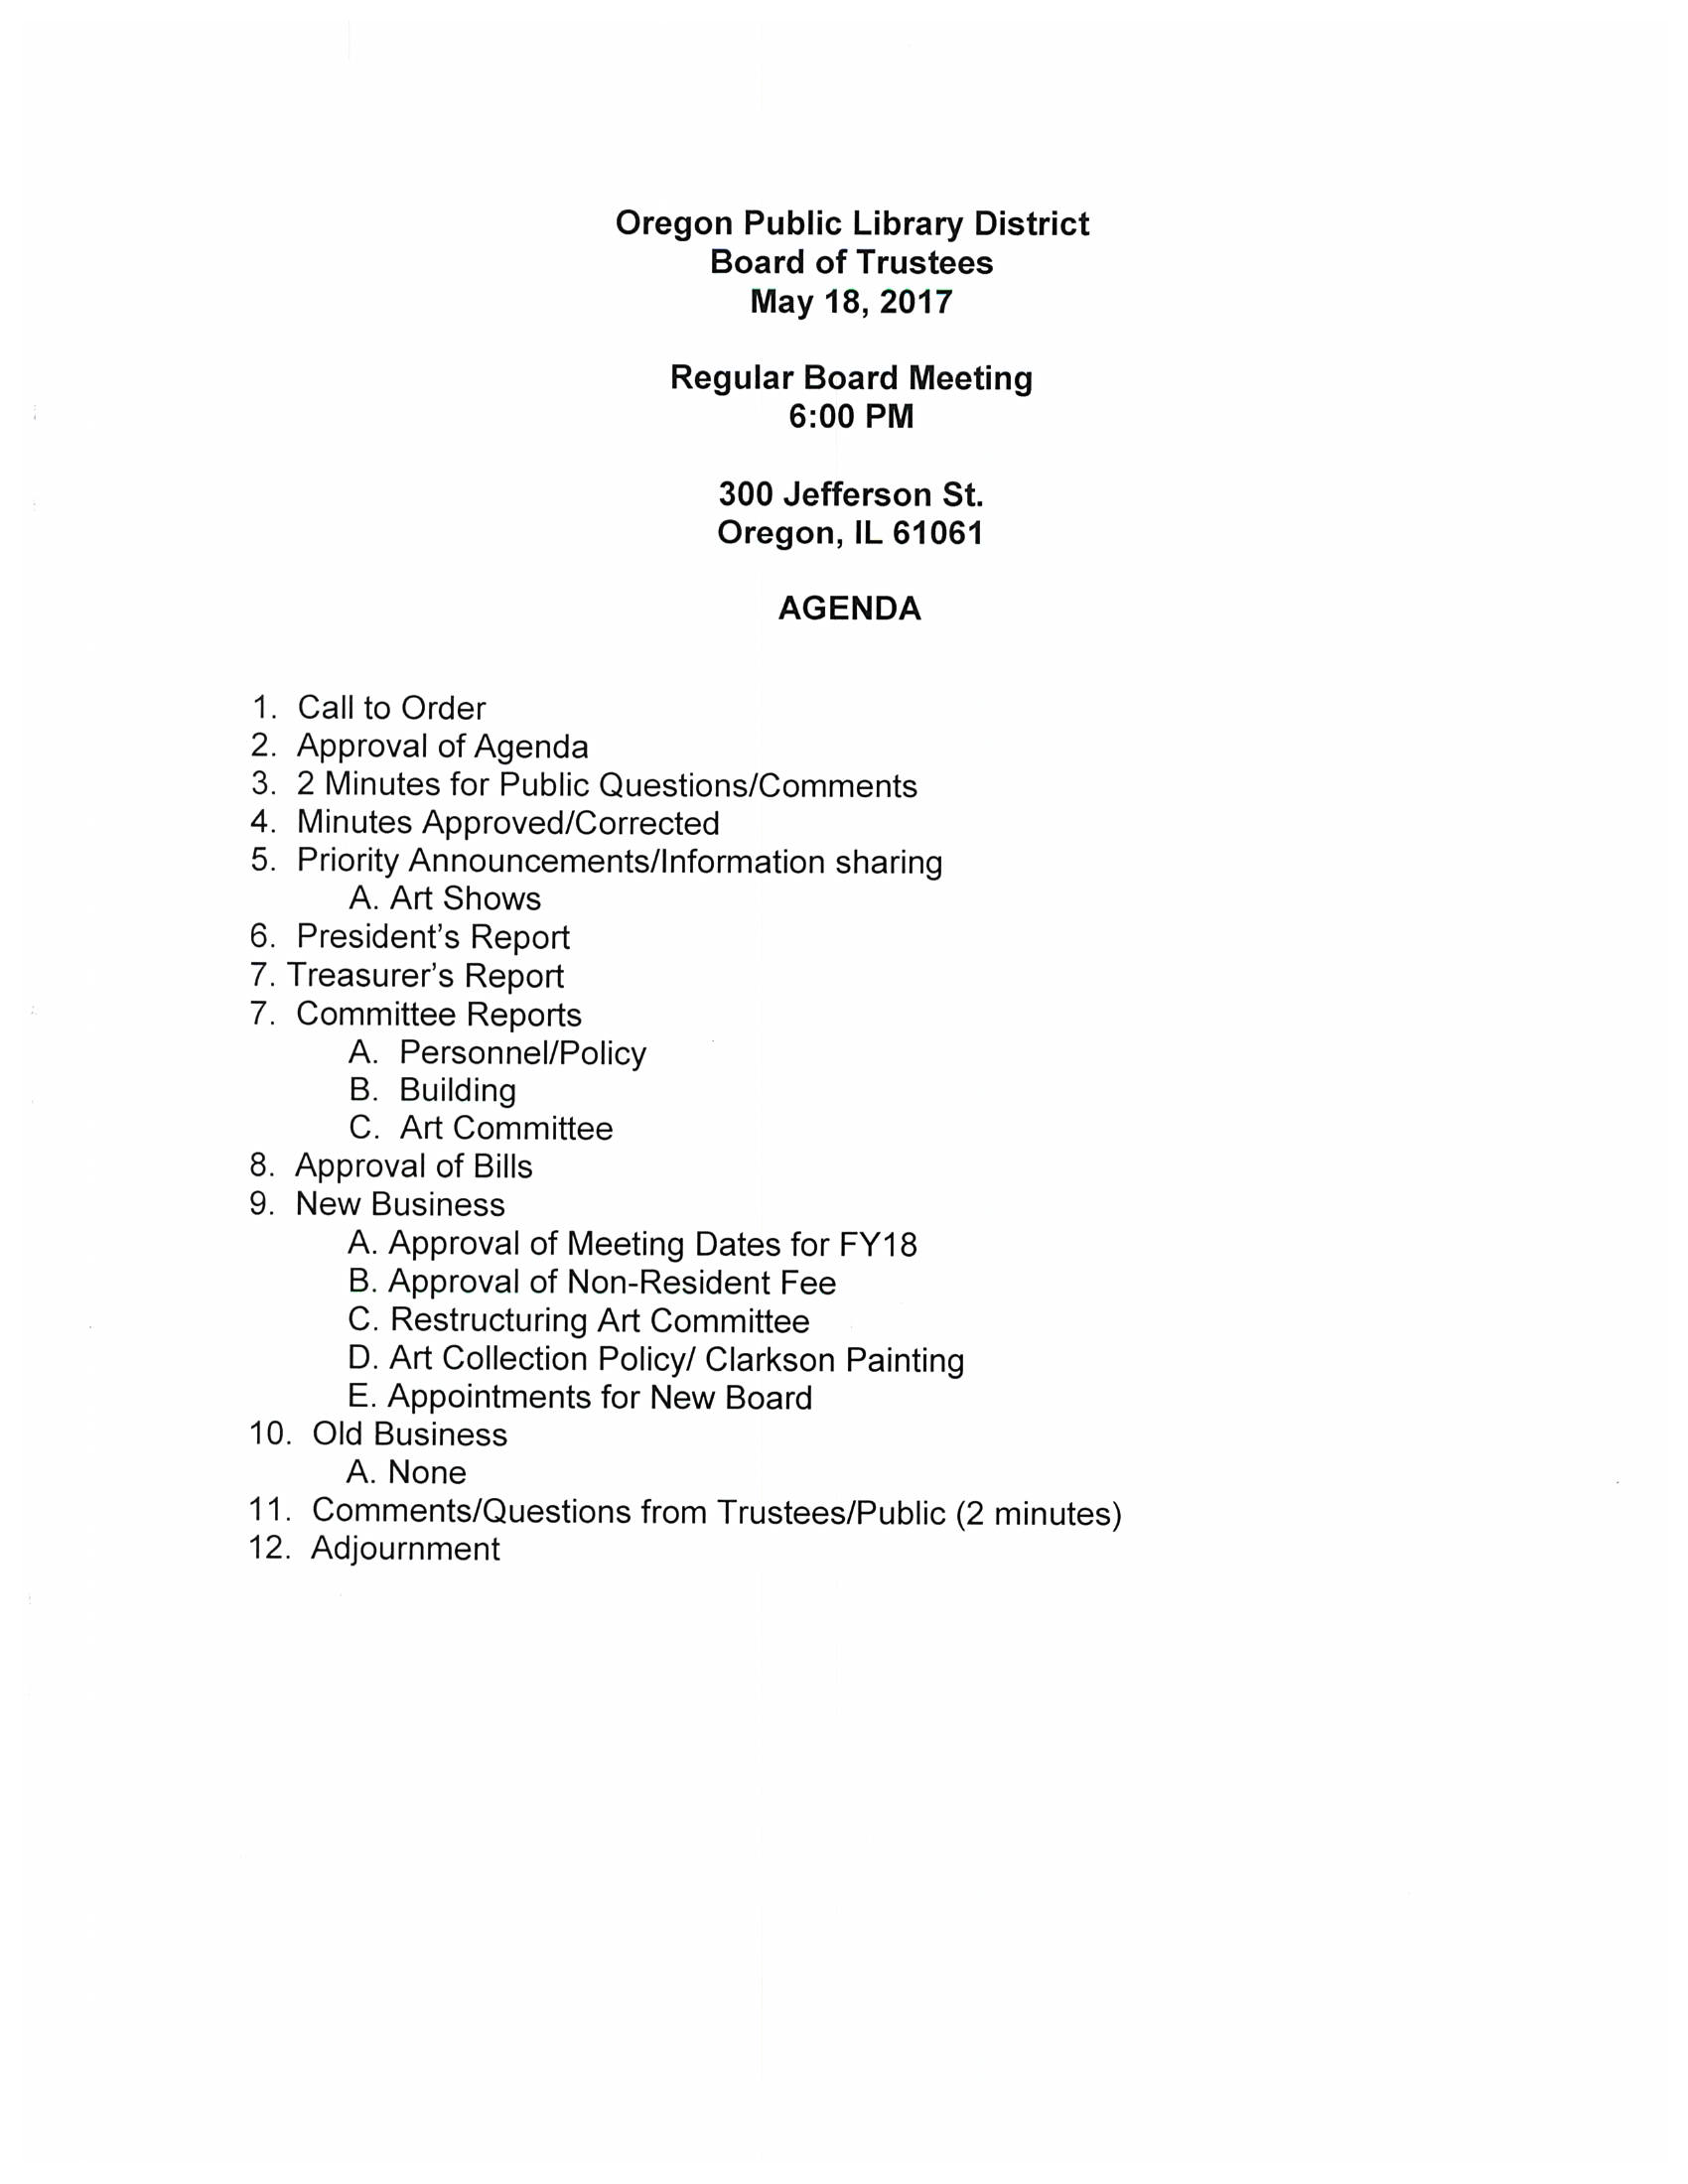 May Board Meeting Agenda – Oregon Public Library District